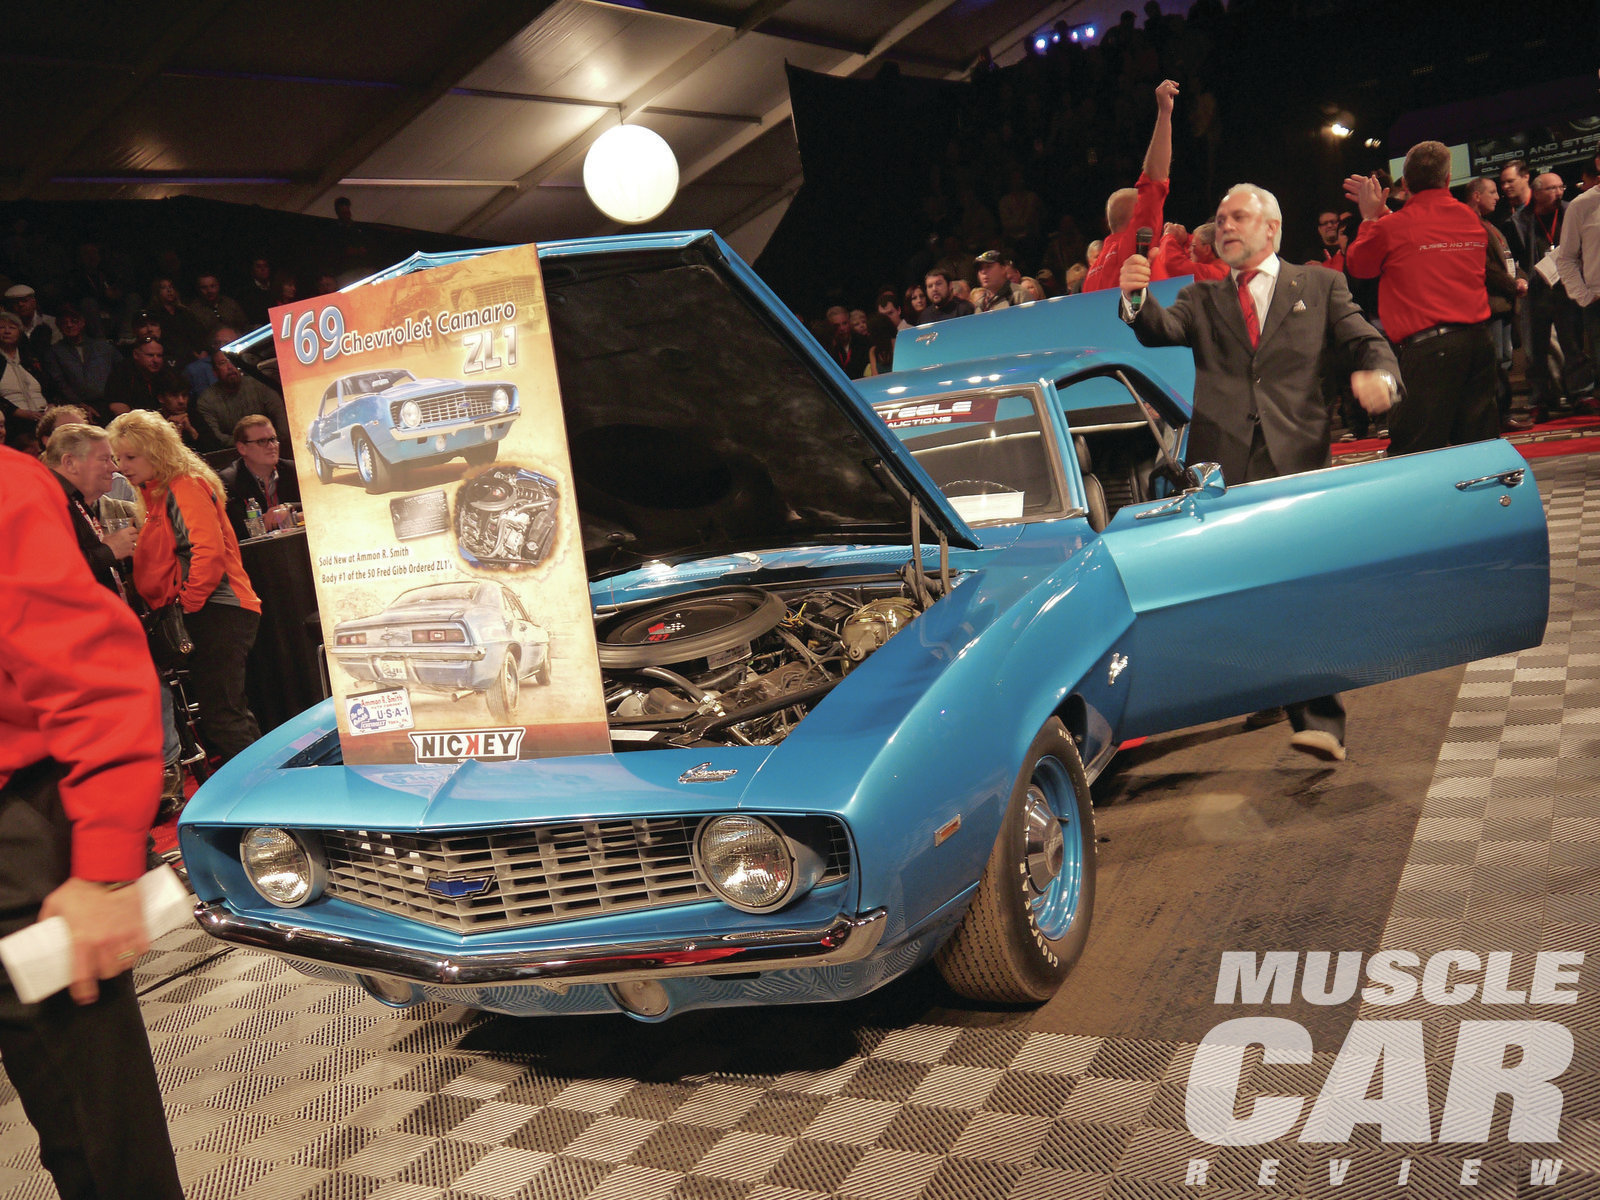 Another Camaro supercar, this one significant as the first of Fred Gibb's 50 ZL-1s, sold at Russo & Steele for $605,000.